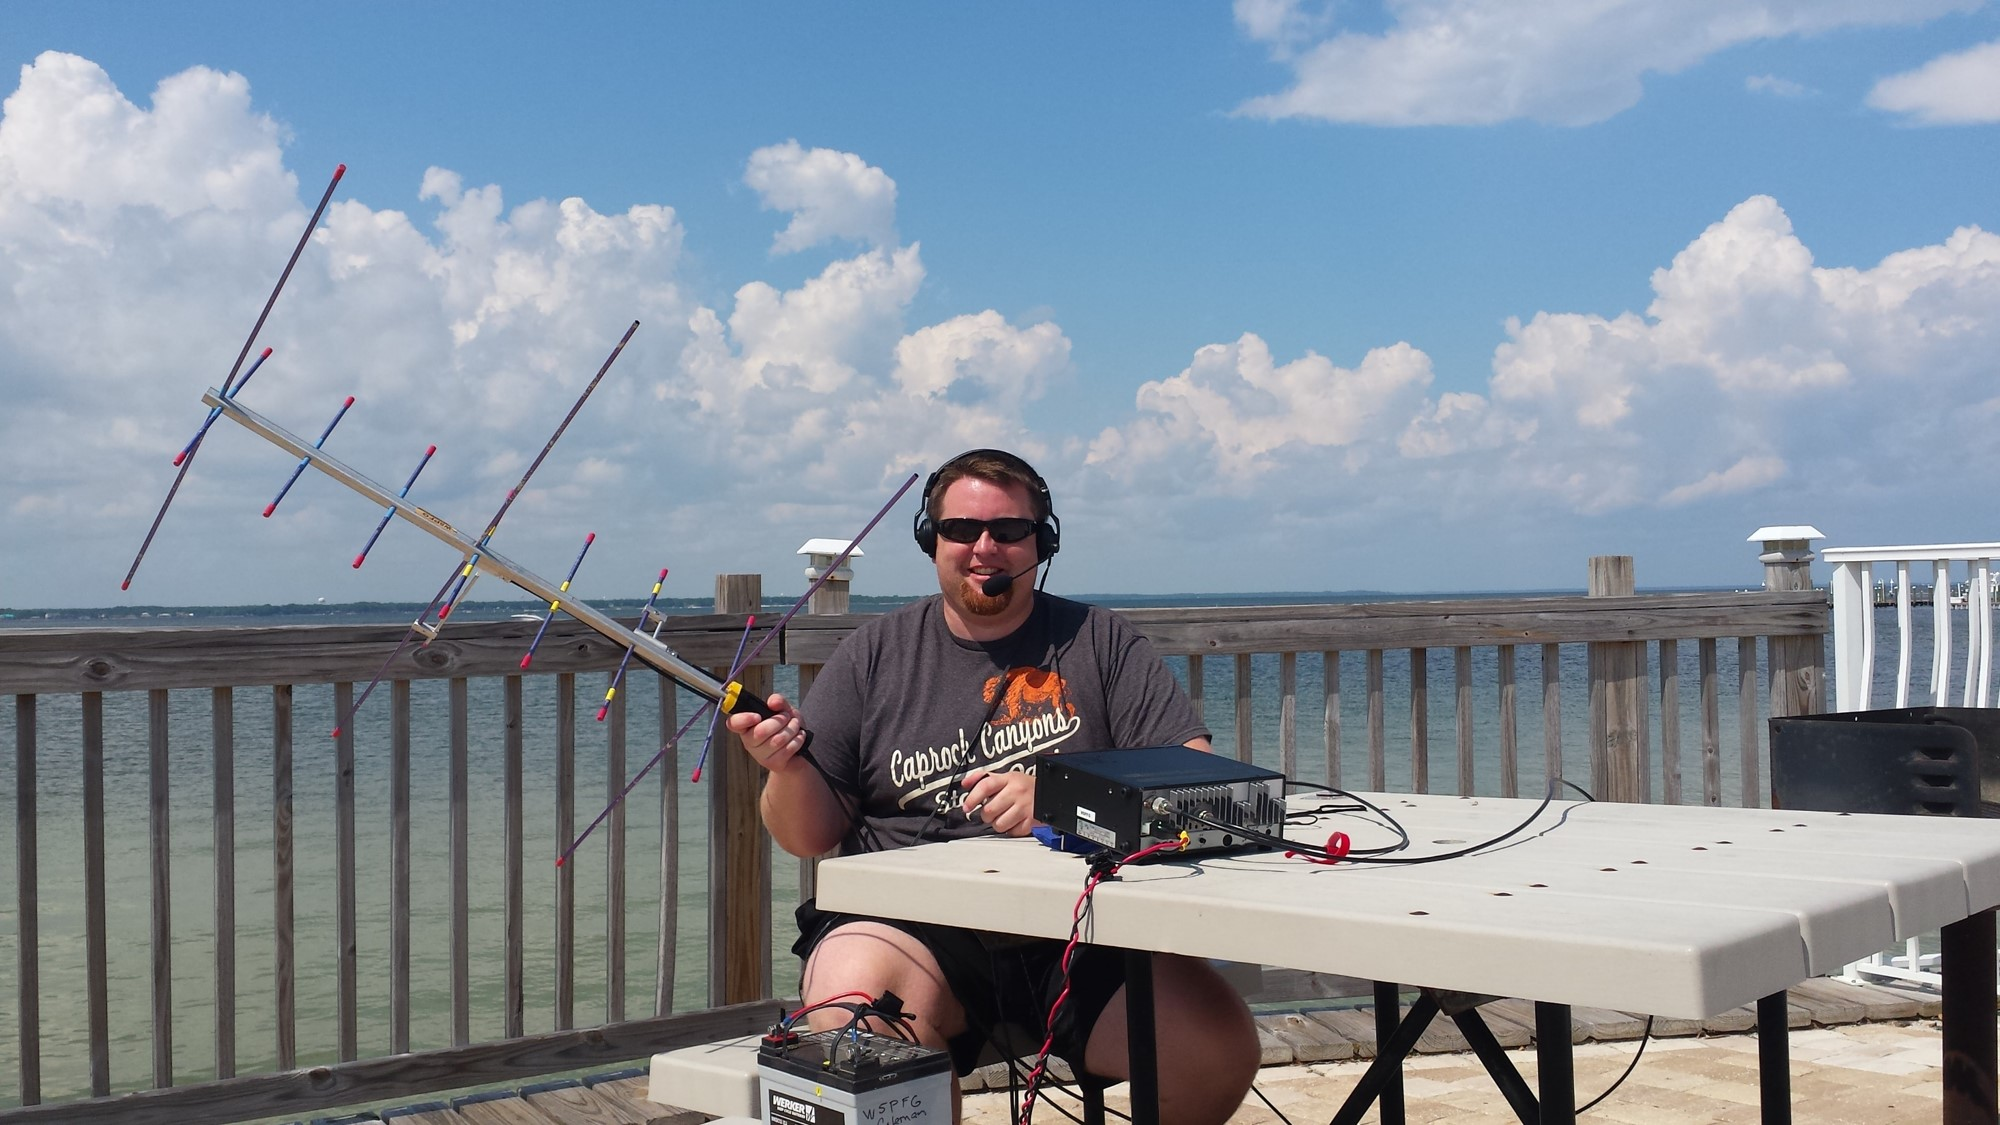 Clayton Coleman, W5PFG, shows off his portable satellite station.